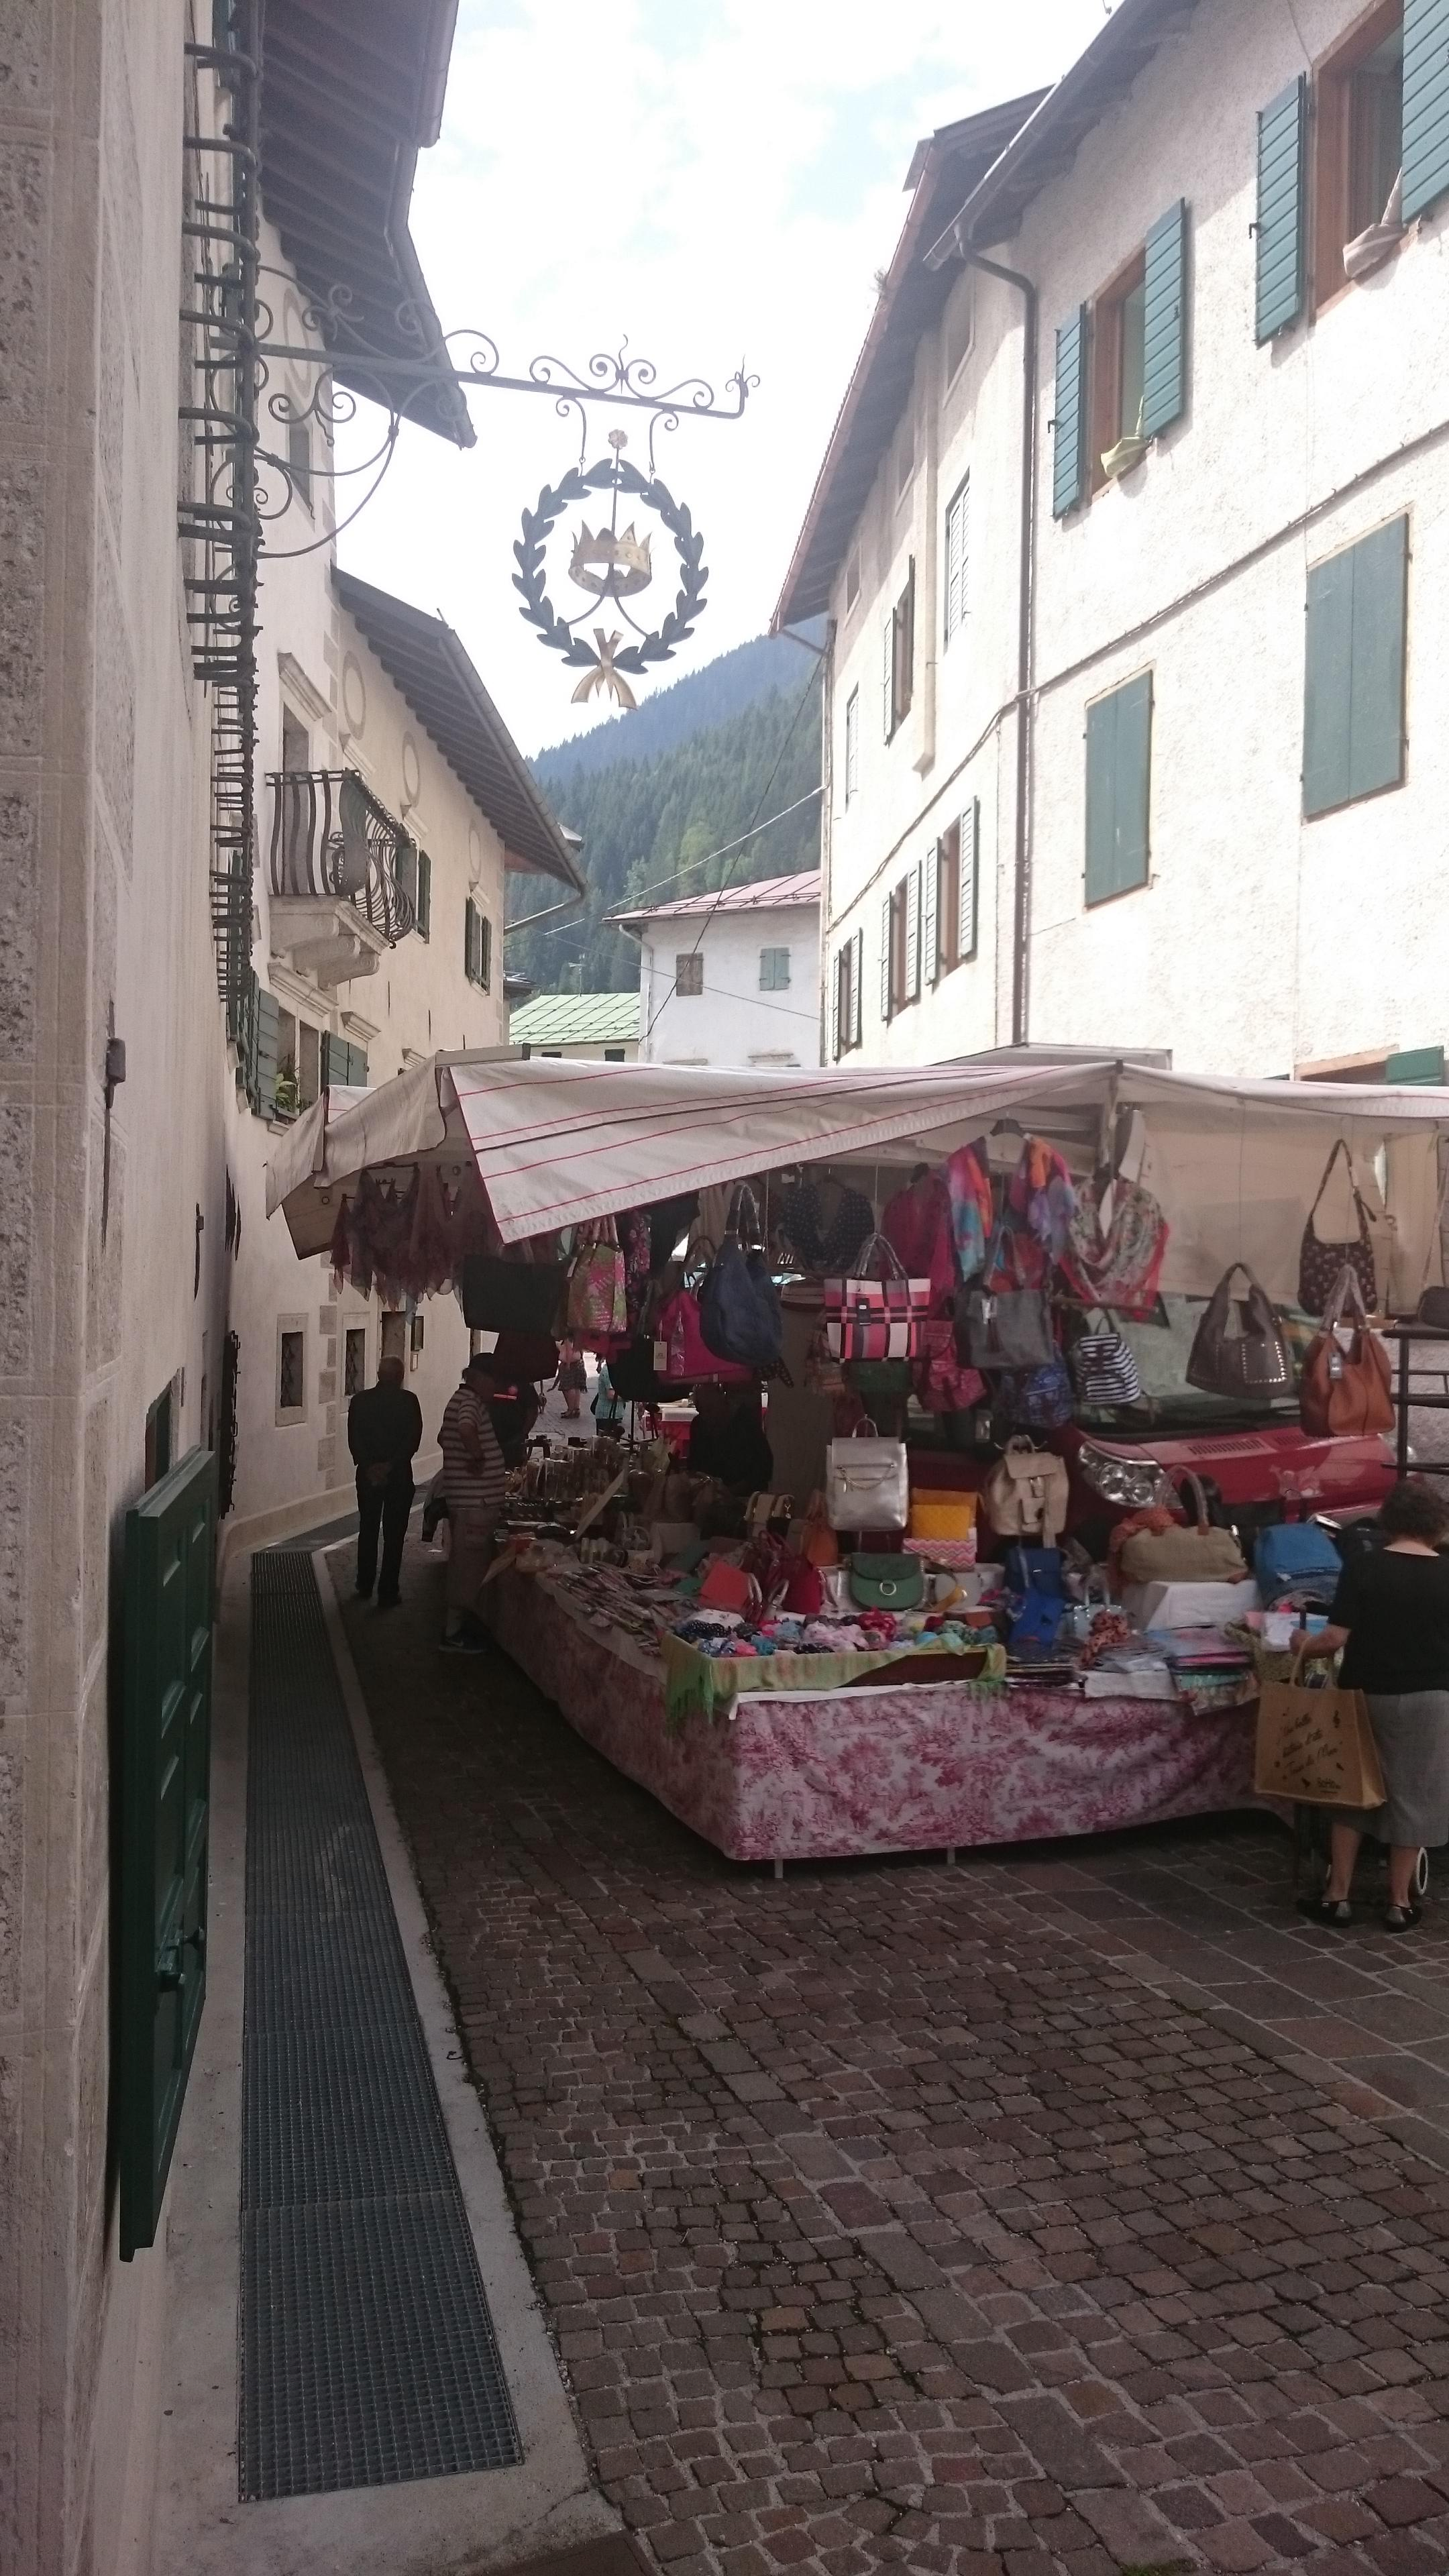 Market day in Caprile